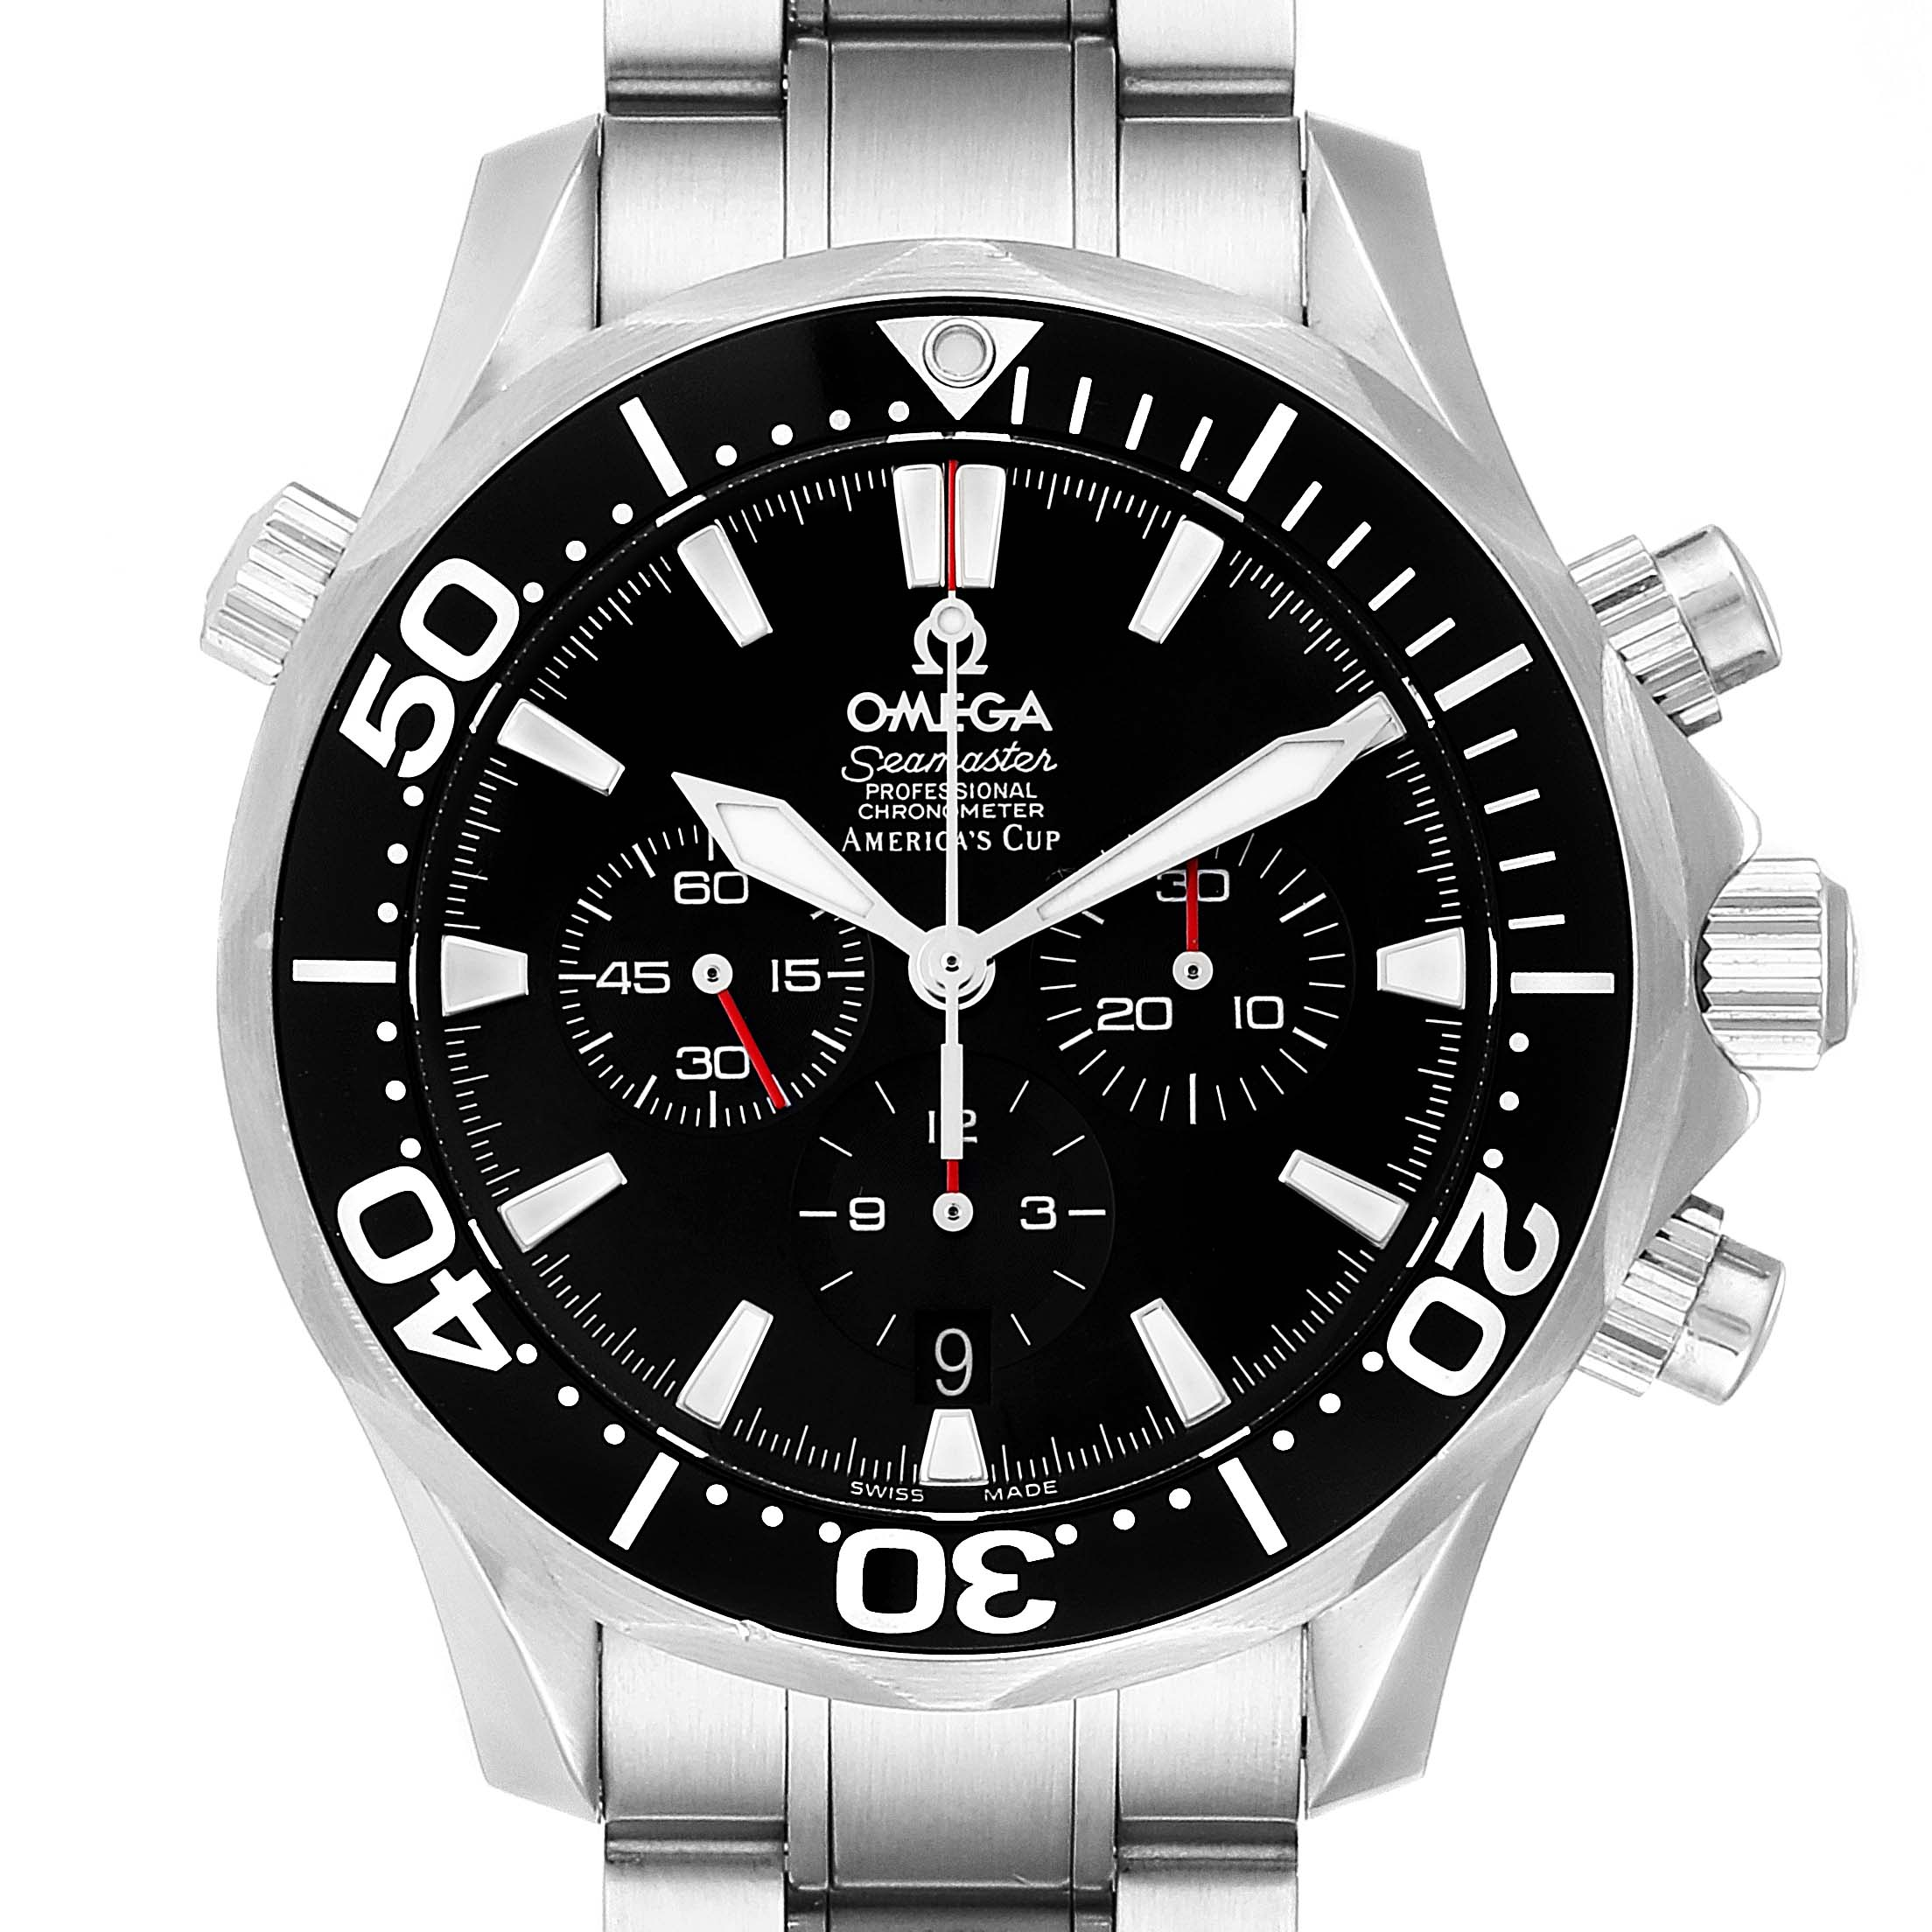 Omega Seamaster 300M Chronograph Americas Cup Watch 2594.50.00 Box Card